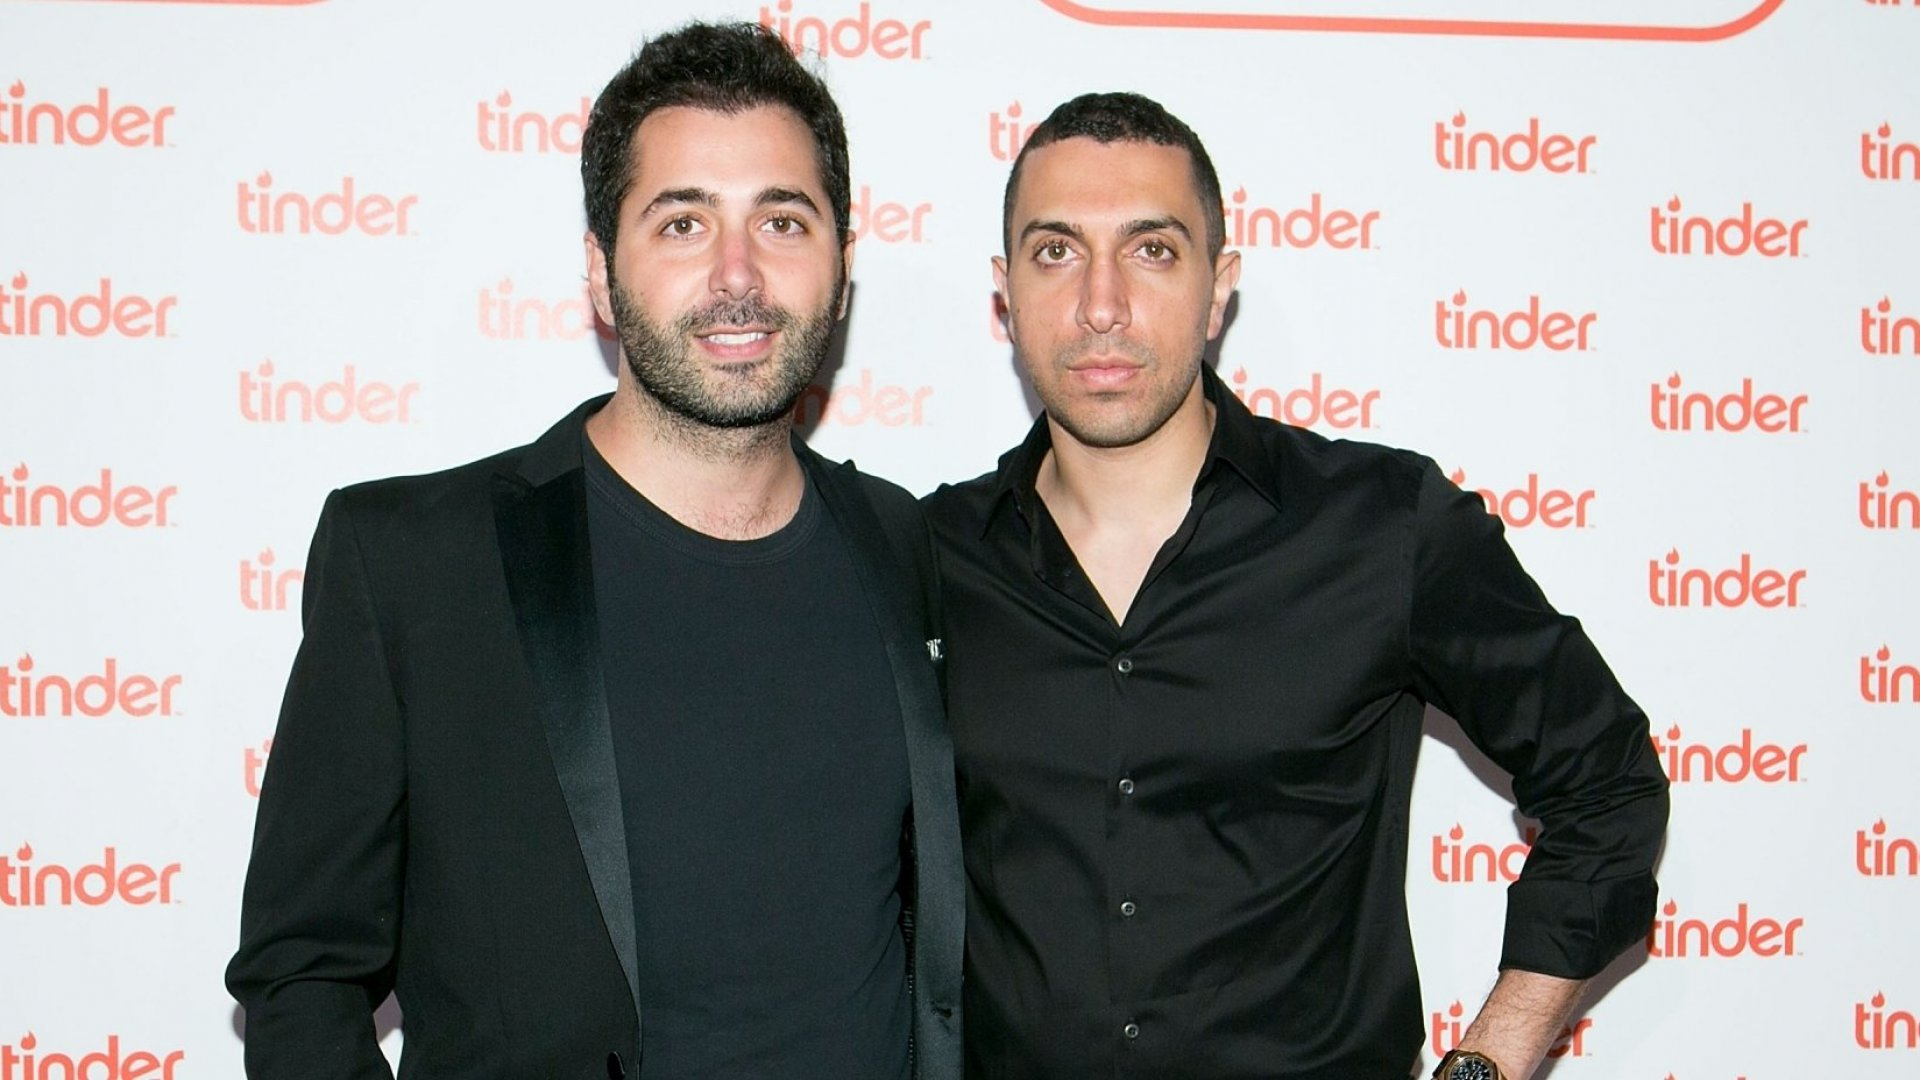 Why Tinder Is Trying to Shut Down the 'Tinder for Threesomes'